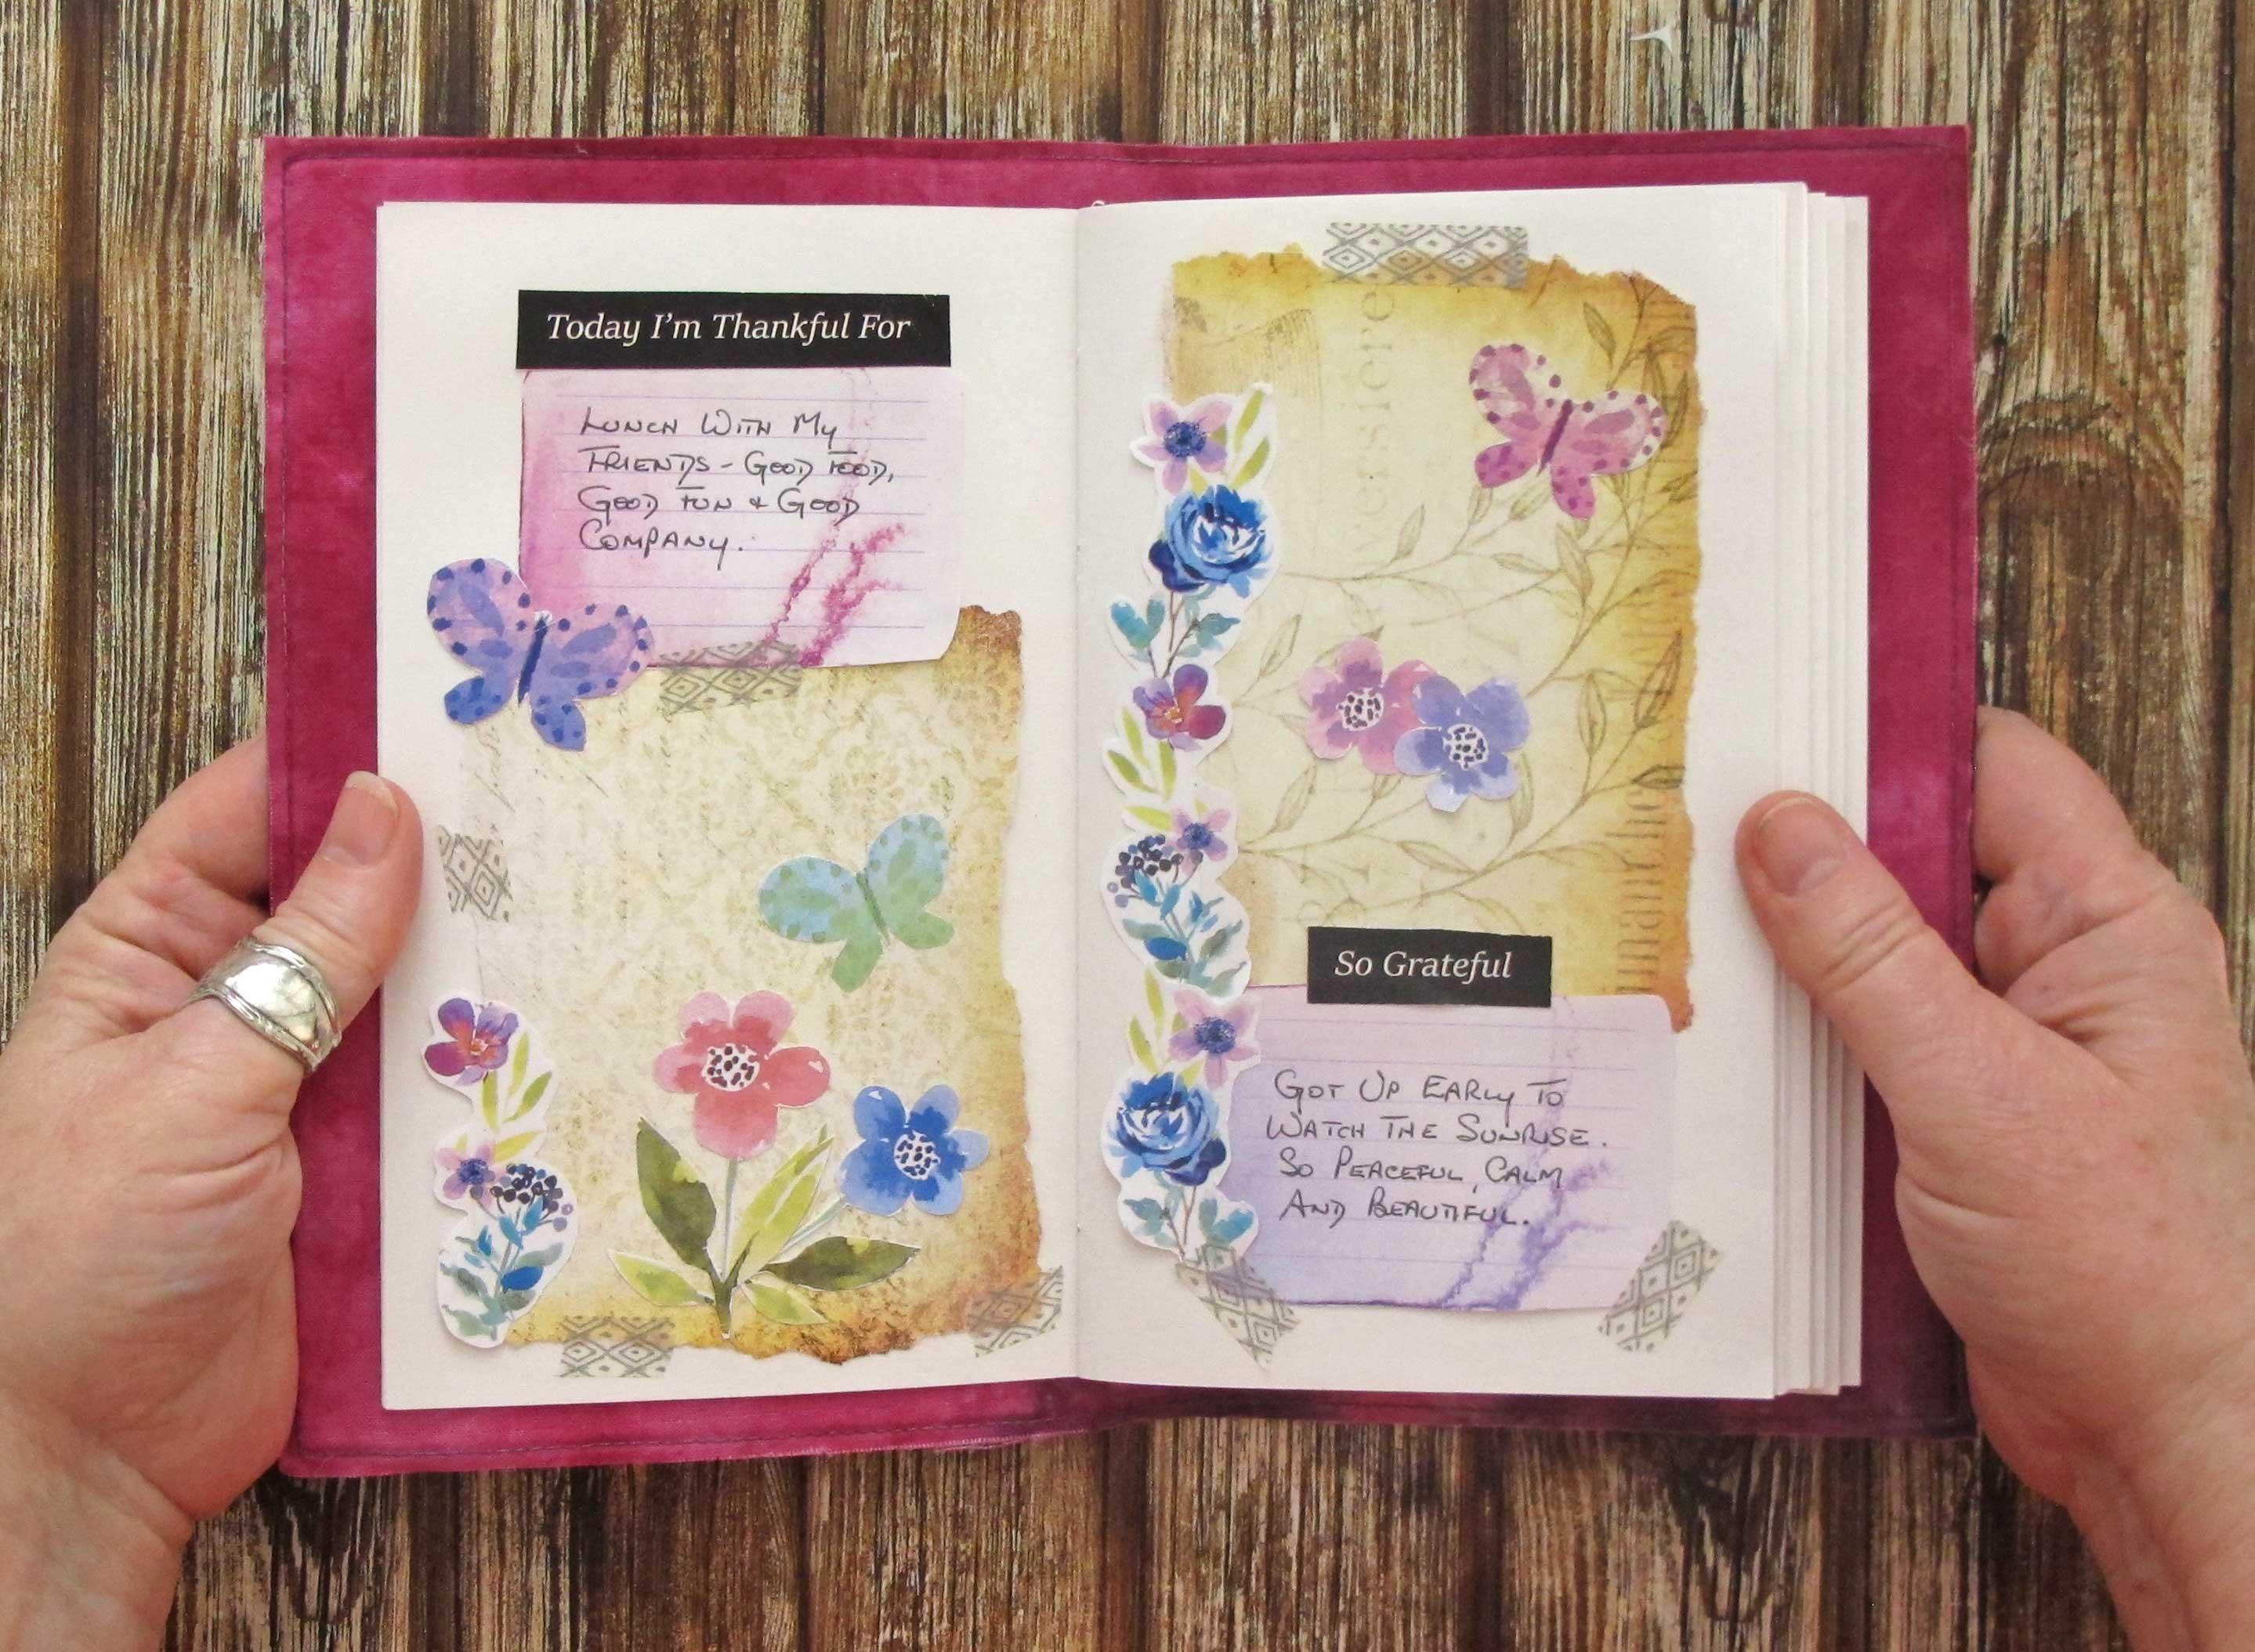 Get Creative in Your Gratitude Journal with these Free Printables